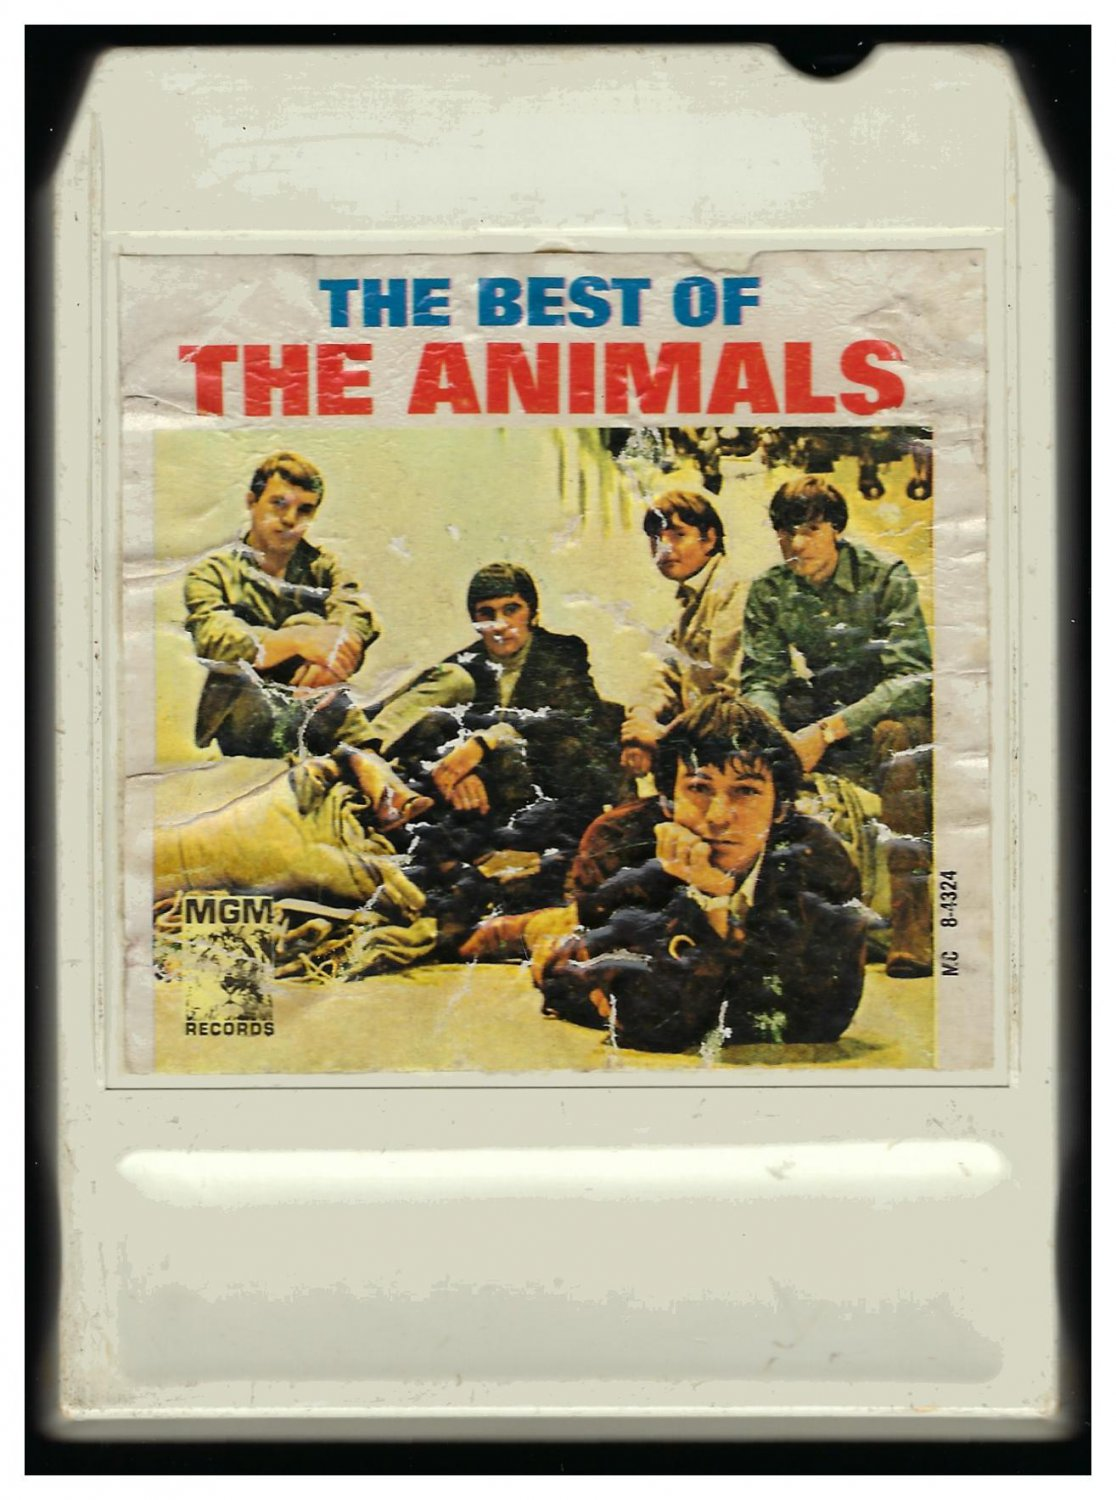 The Animals - The Best Of The Animals 1966 MGM LEAR AMPEX A19C 8-TRACK TAPE